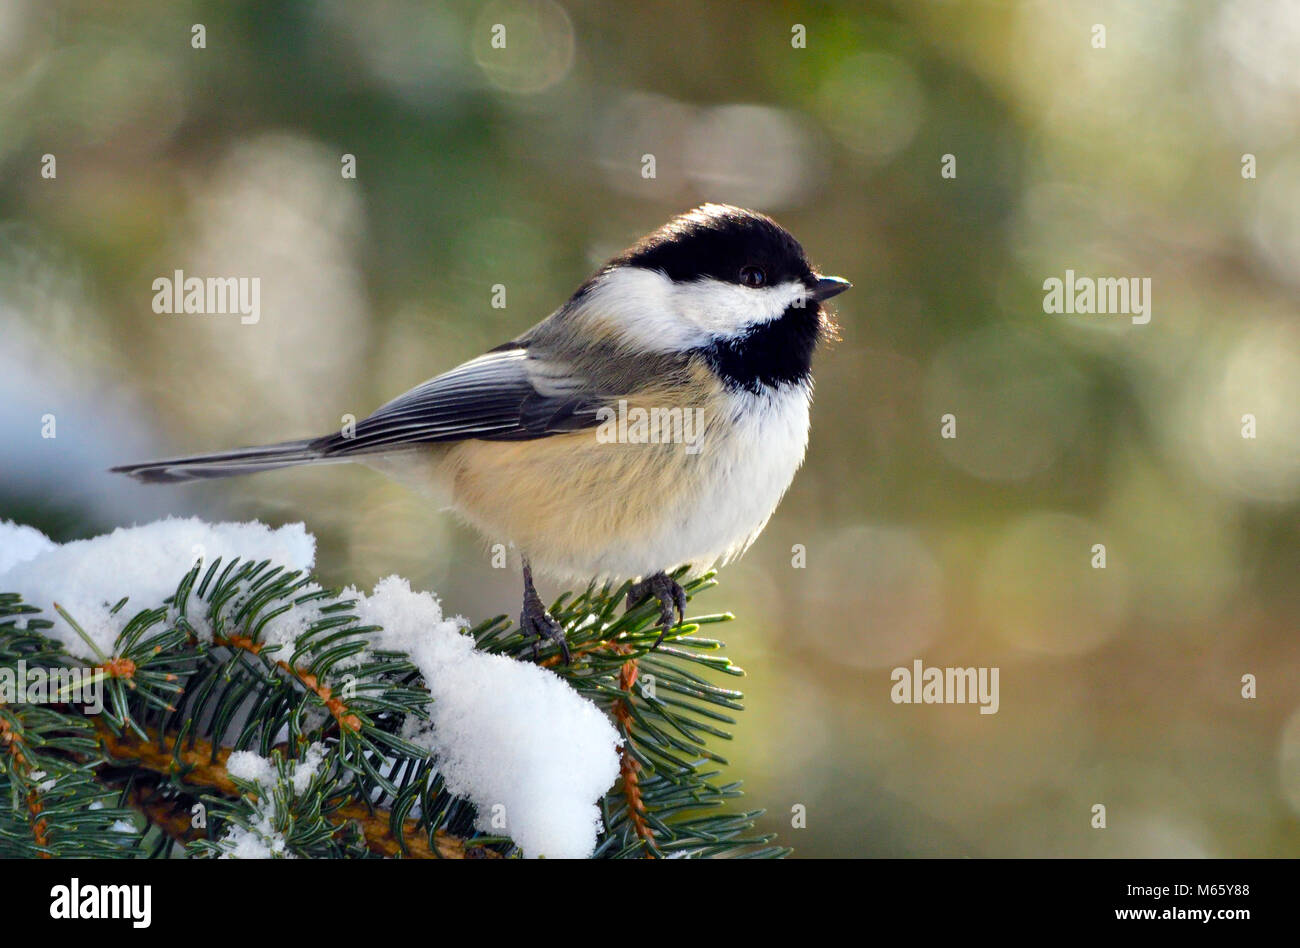 A  side view image of a black-capped chickadee bird perched on a tree branch in rural Alberta Canada. - Stock Image